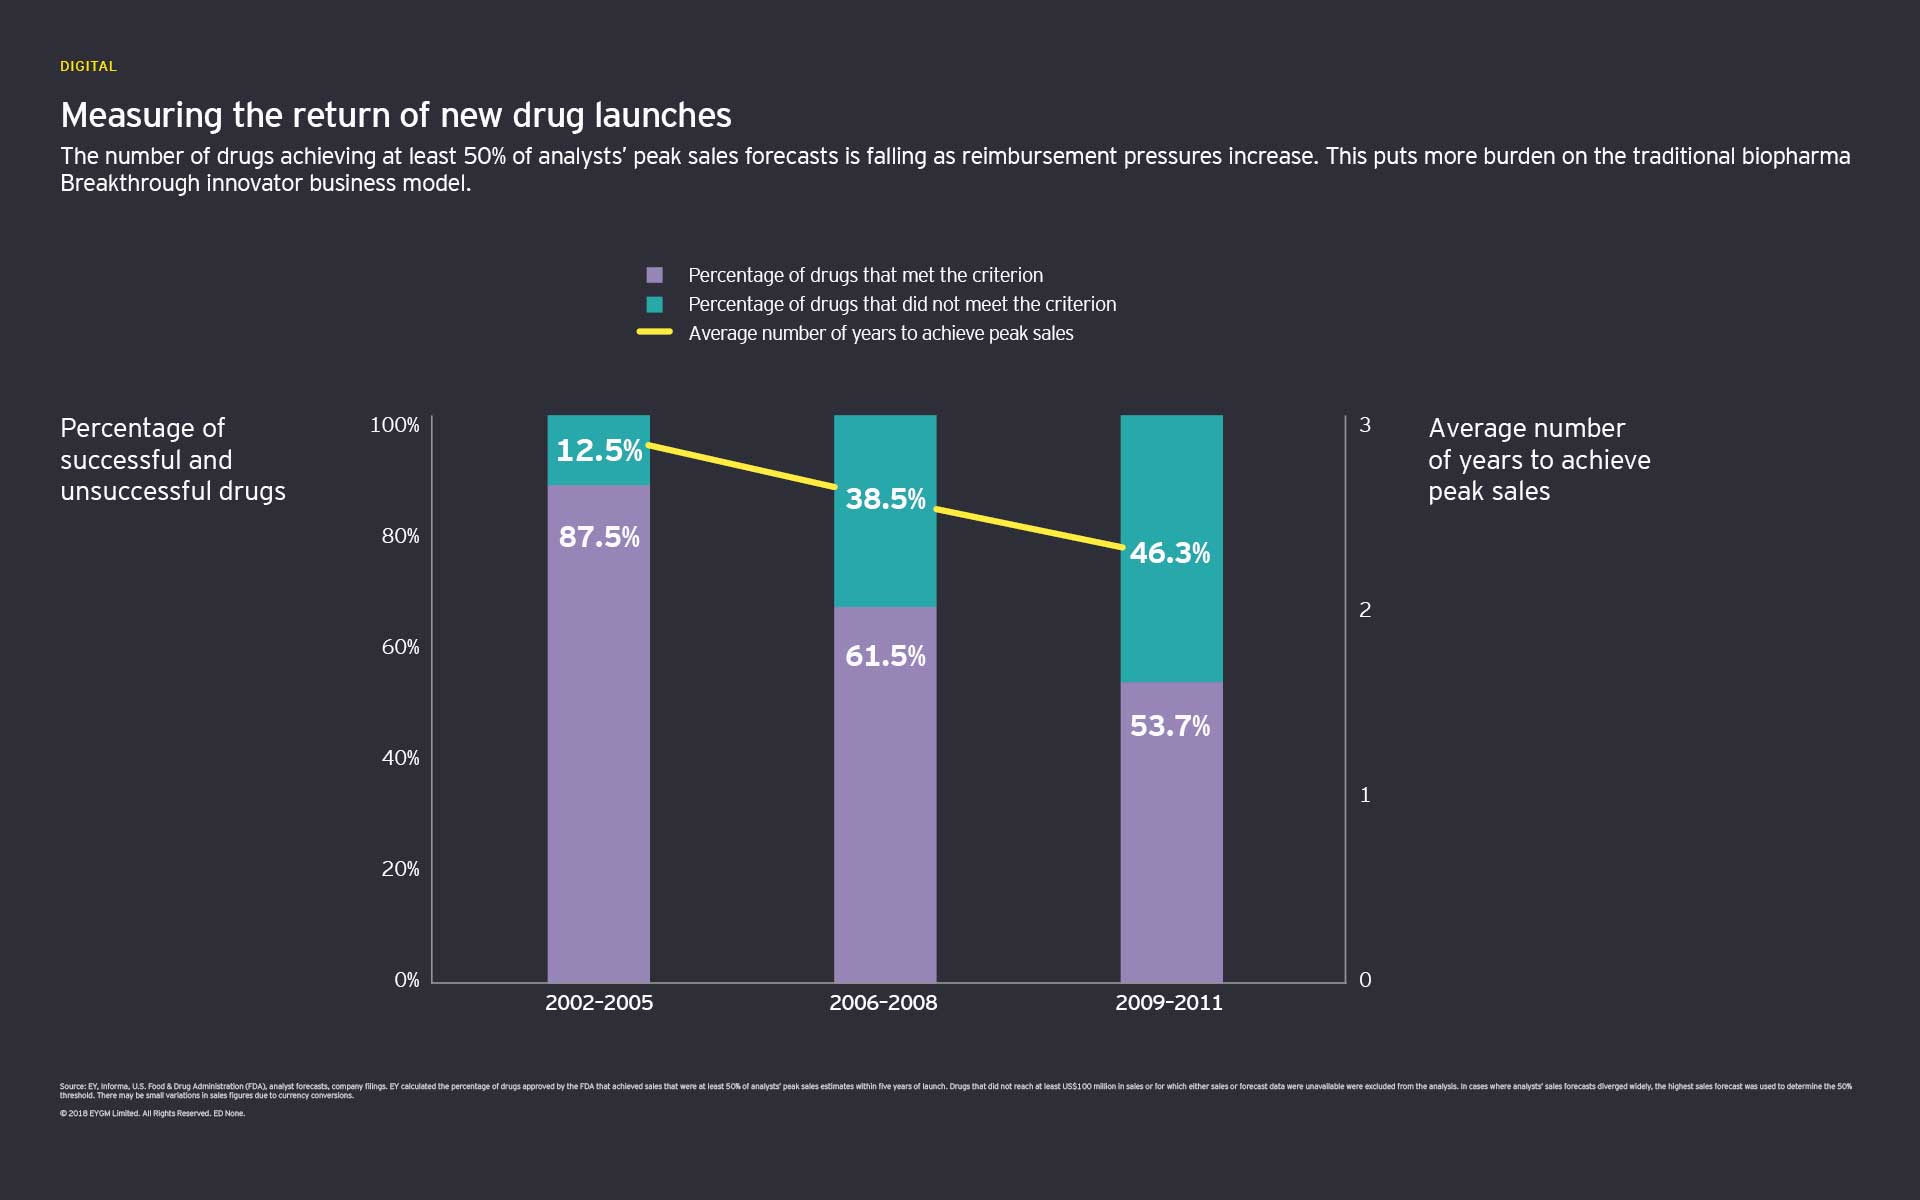 Measuring the return of new drug launches graph